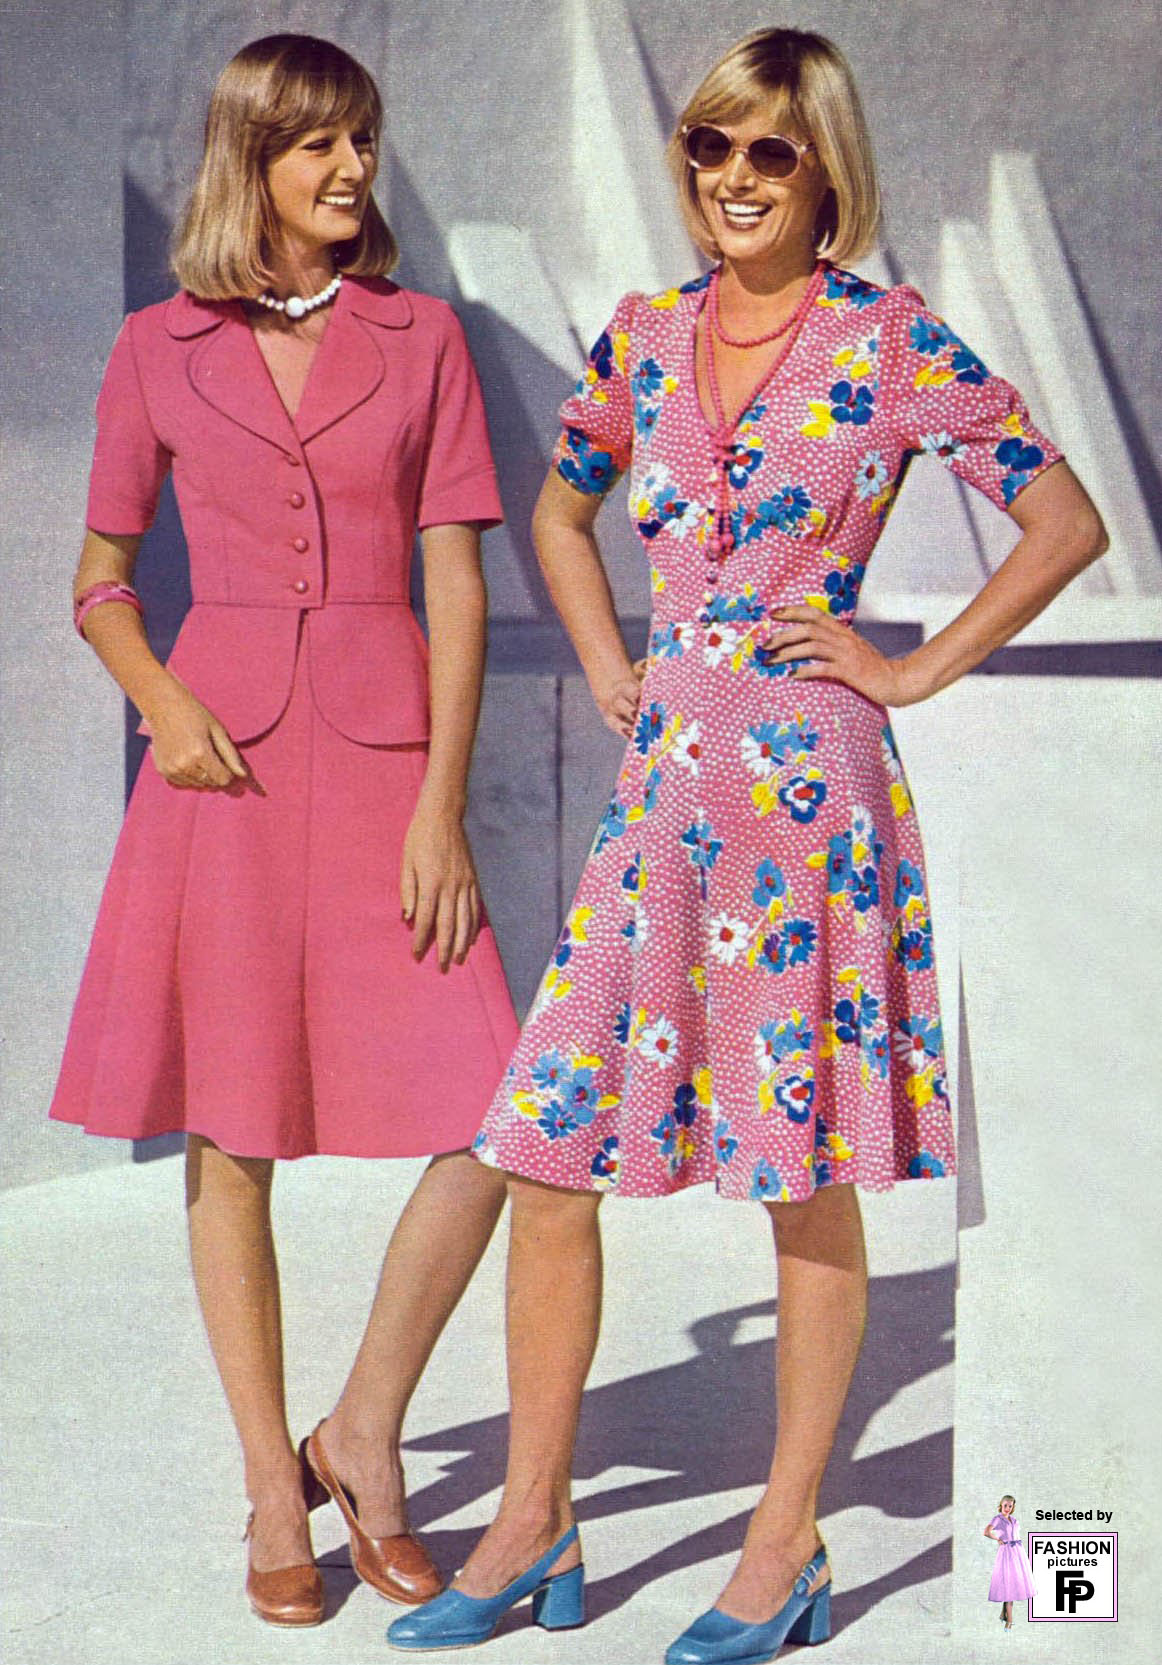 1970s fashion. Page 46 - Fashion Pictures